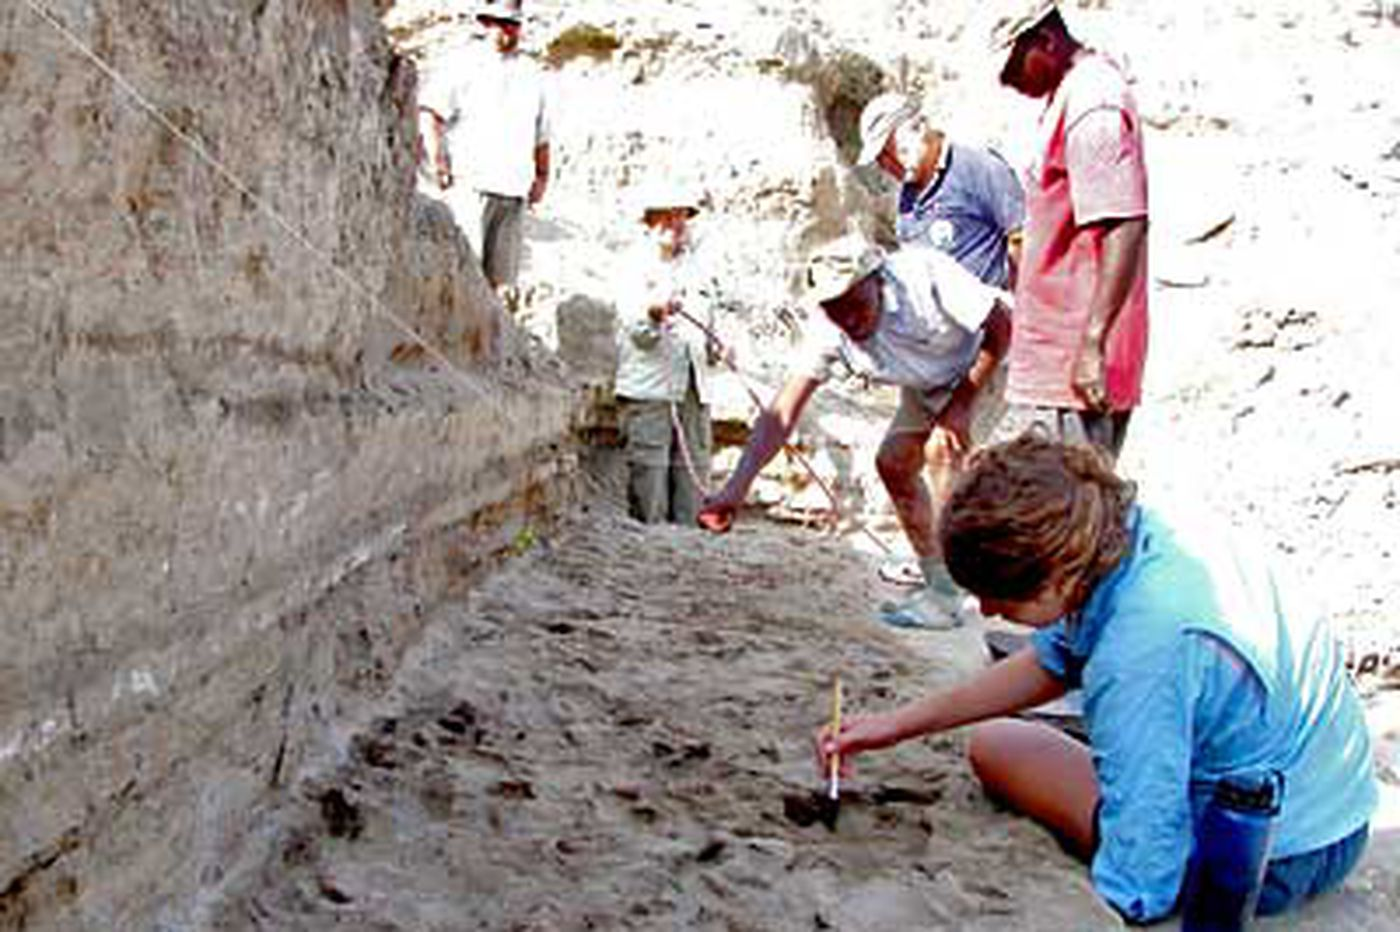 Footprints offer clue on path to modern man